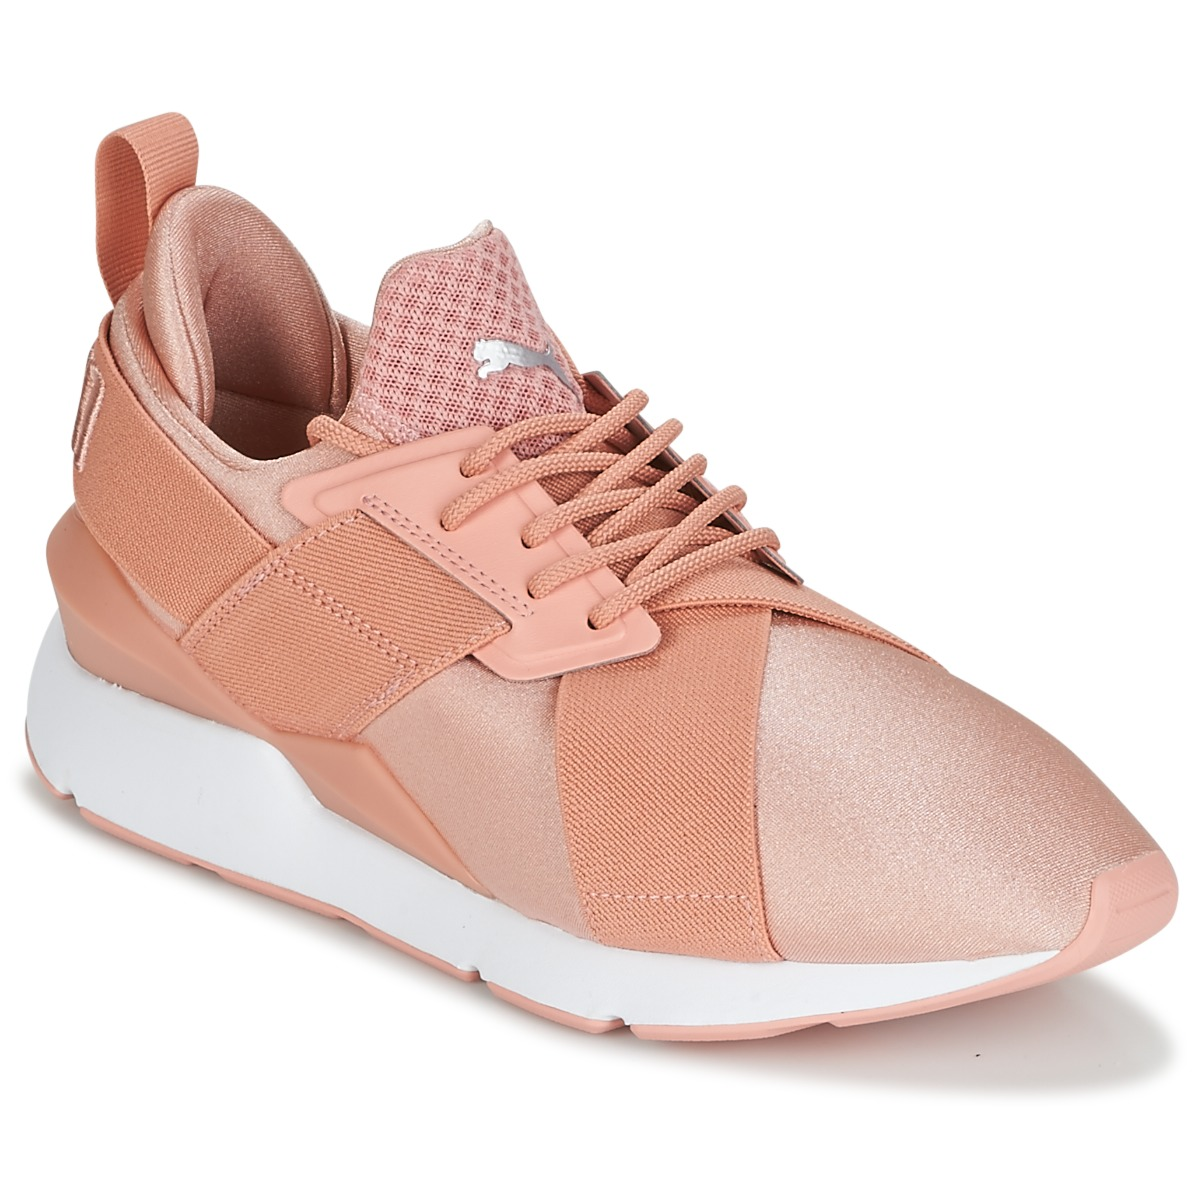 puma donna sneakers rosa